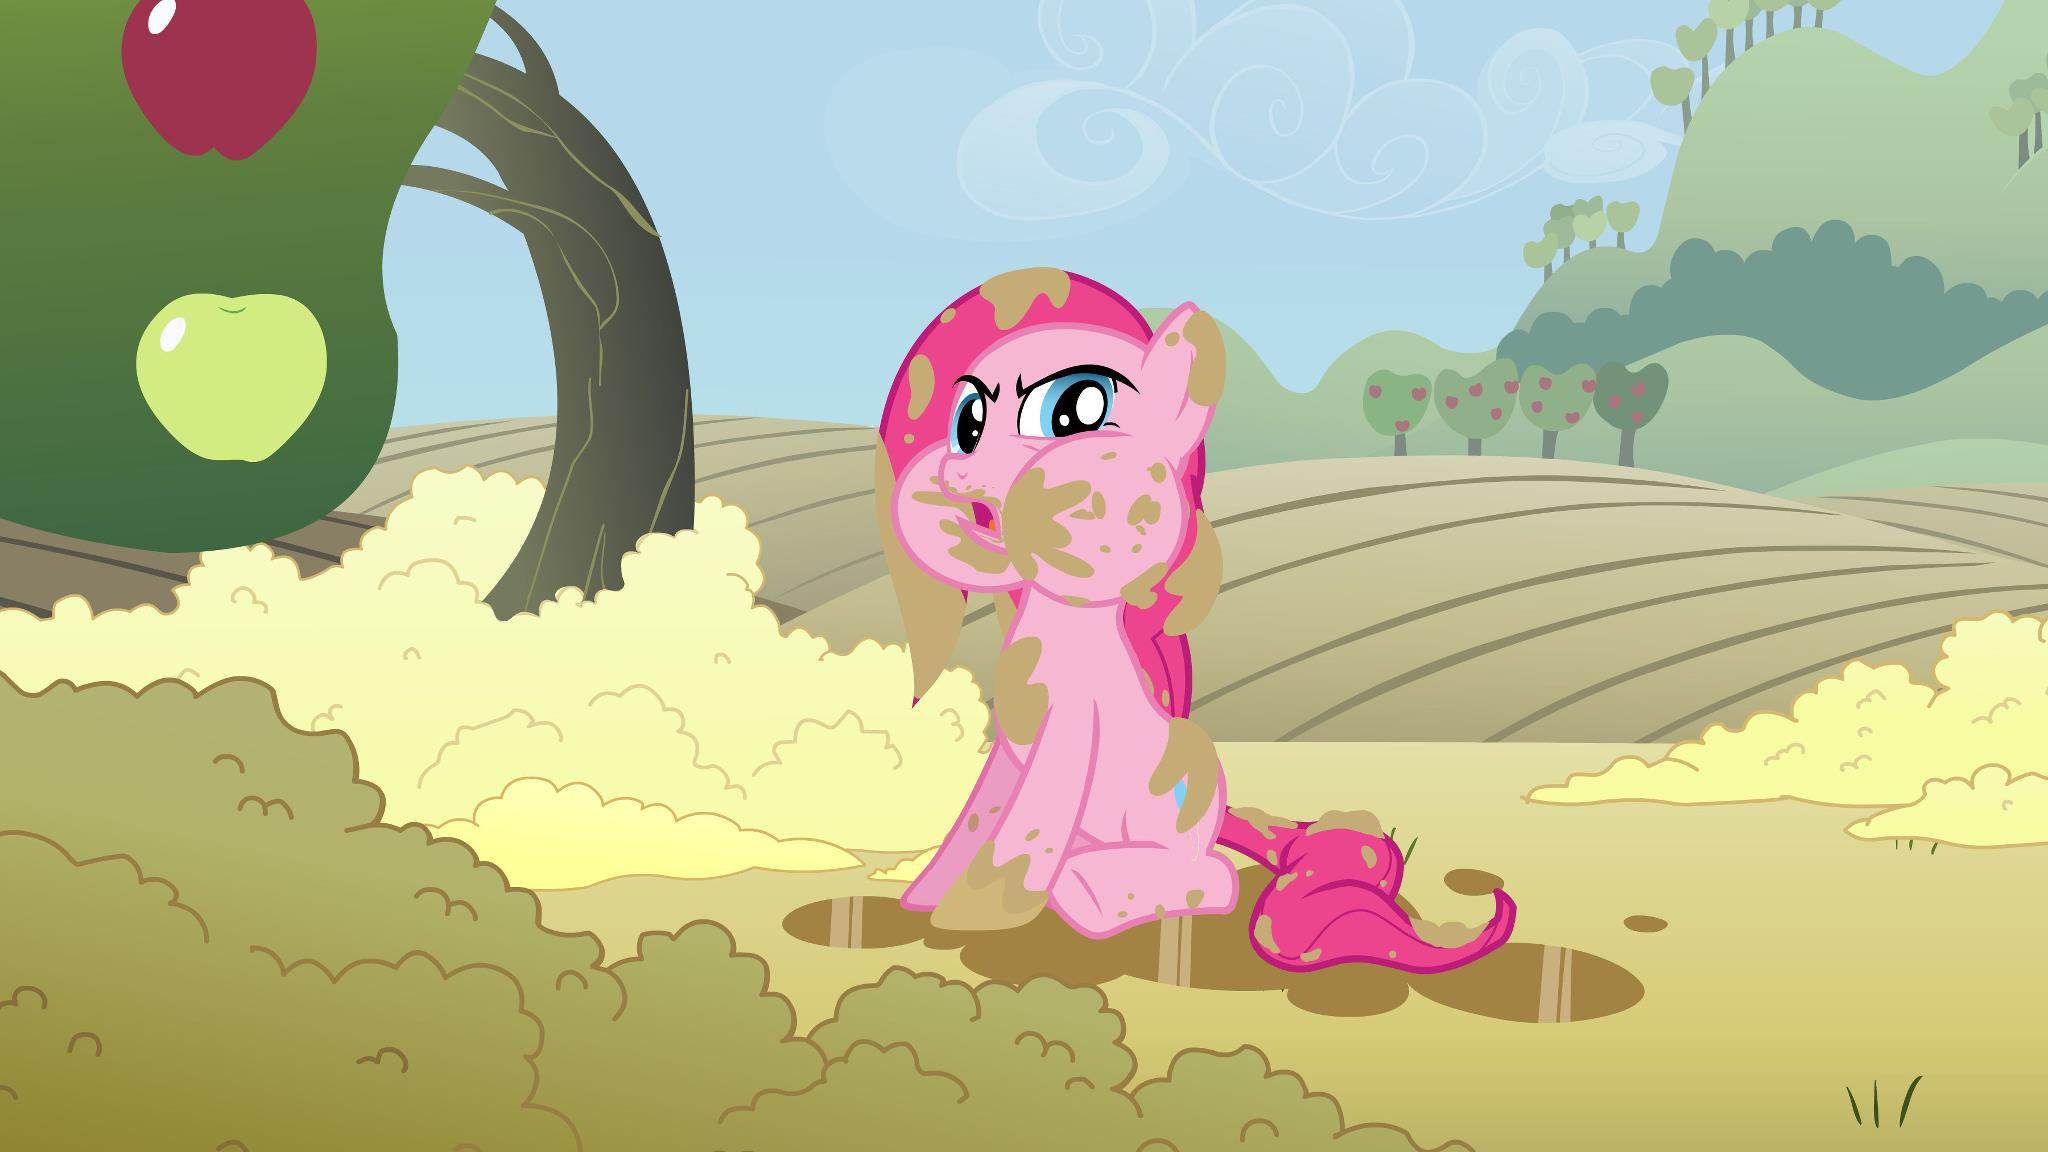 Pinkie Pie is in a puddle of chocolate milk.